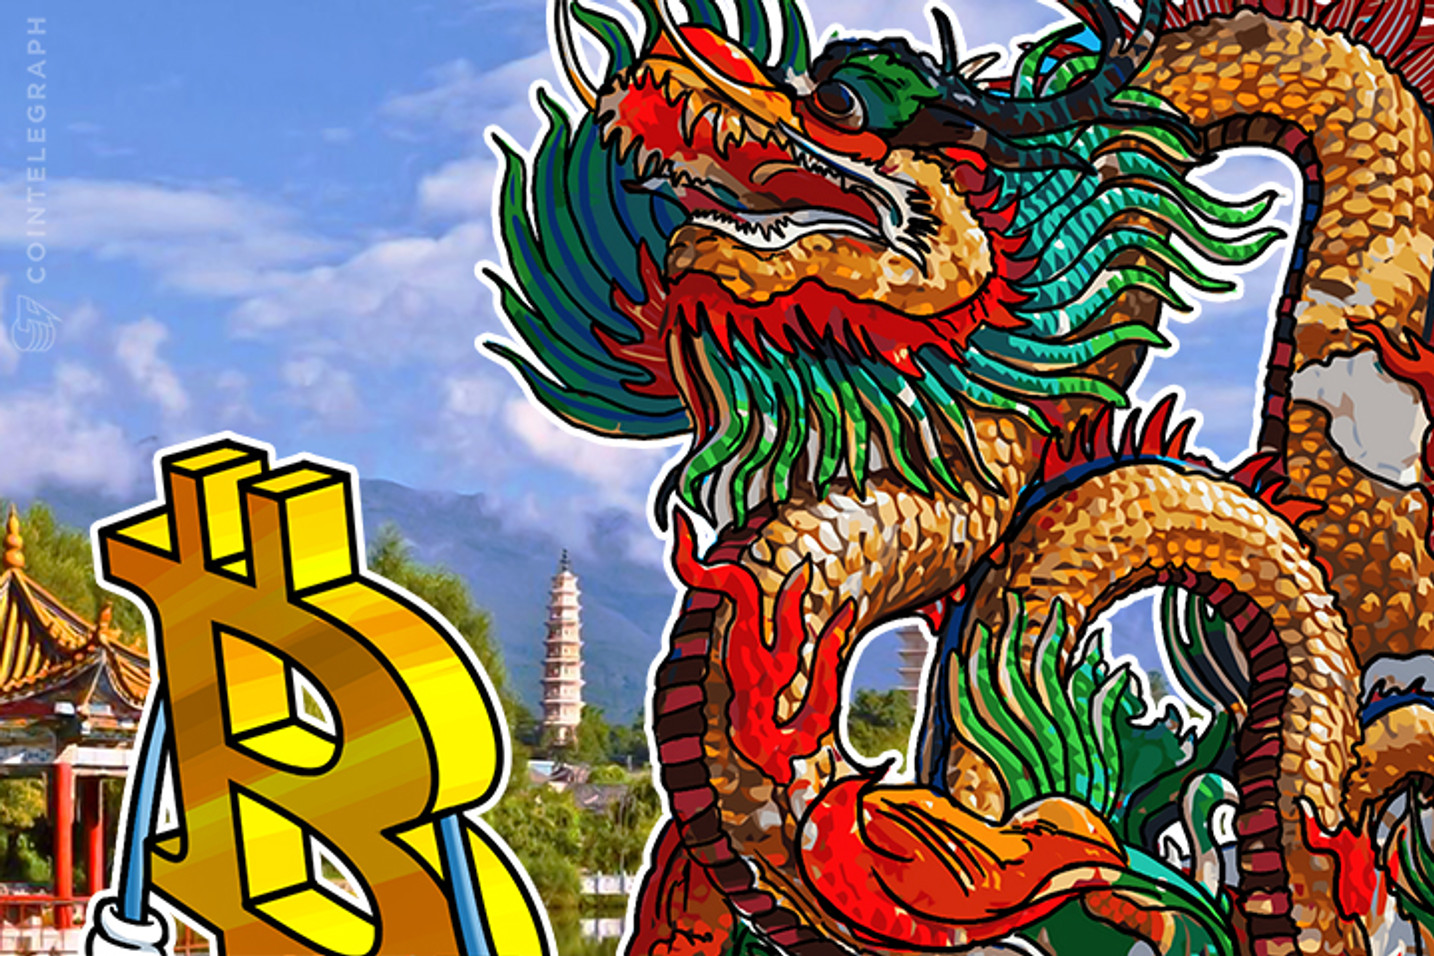 China's Central Bank Not Backing Bitcoin as Currency